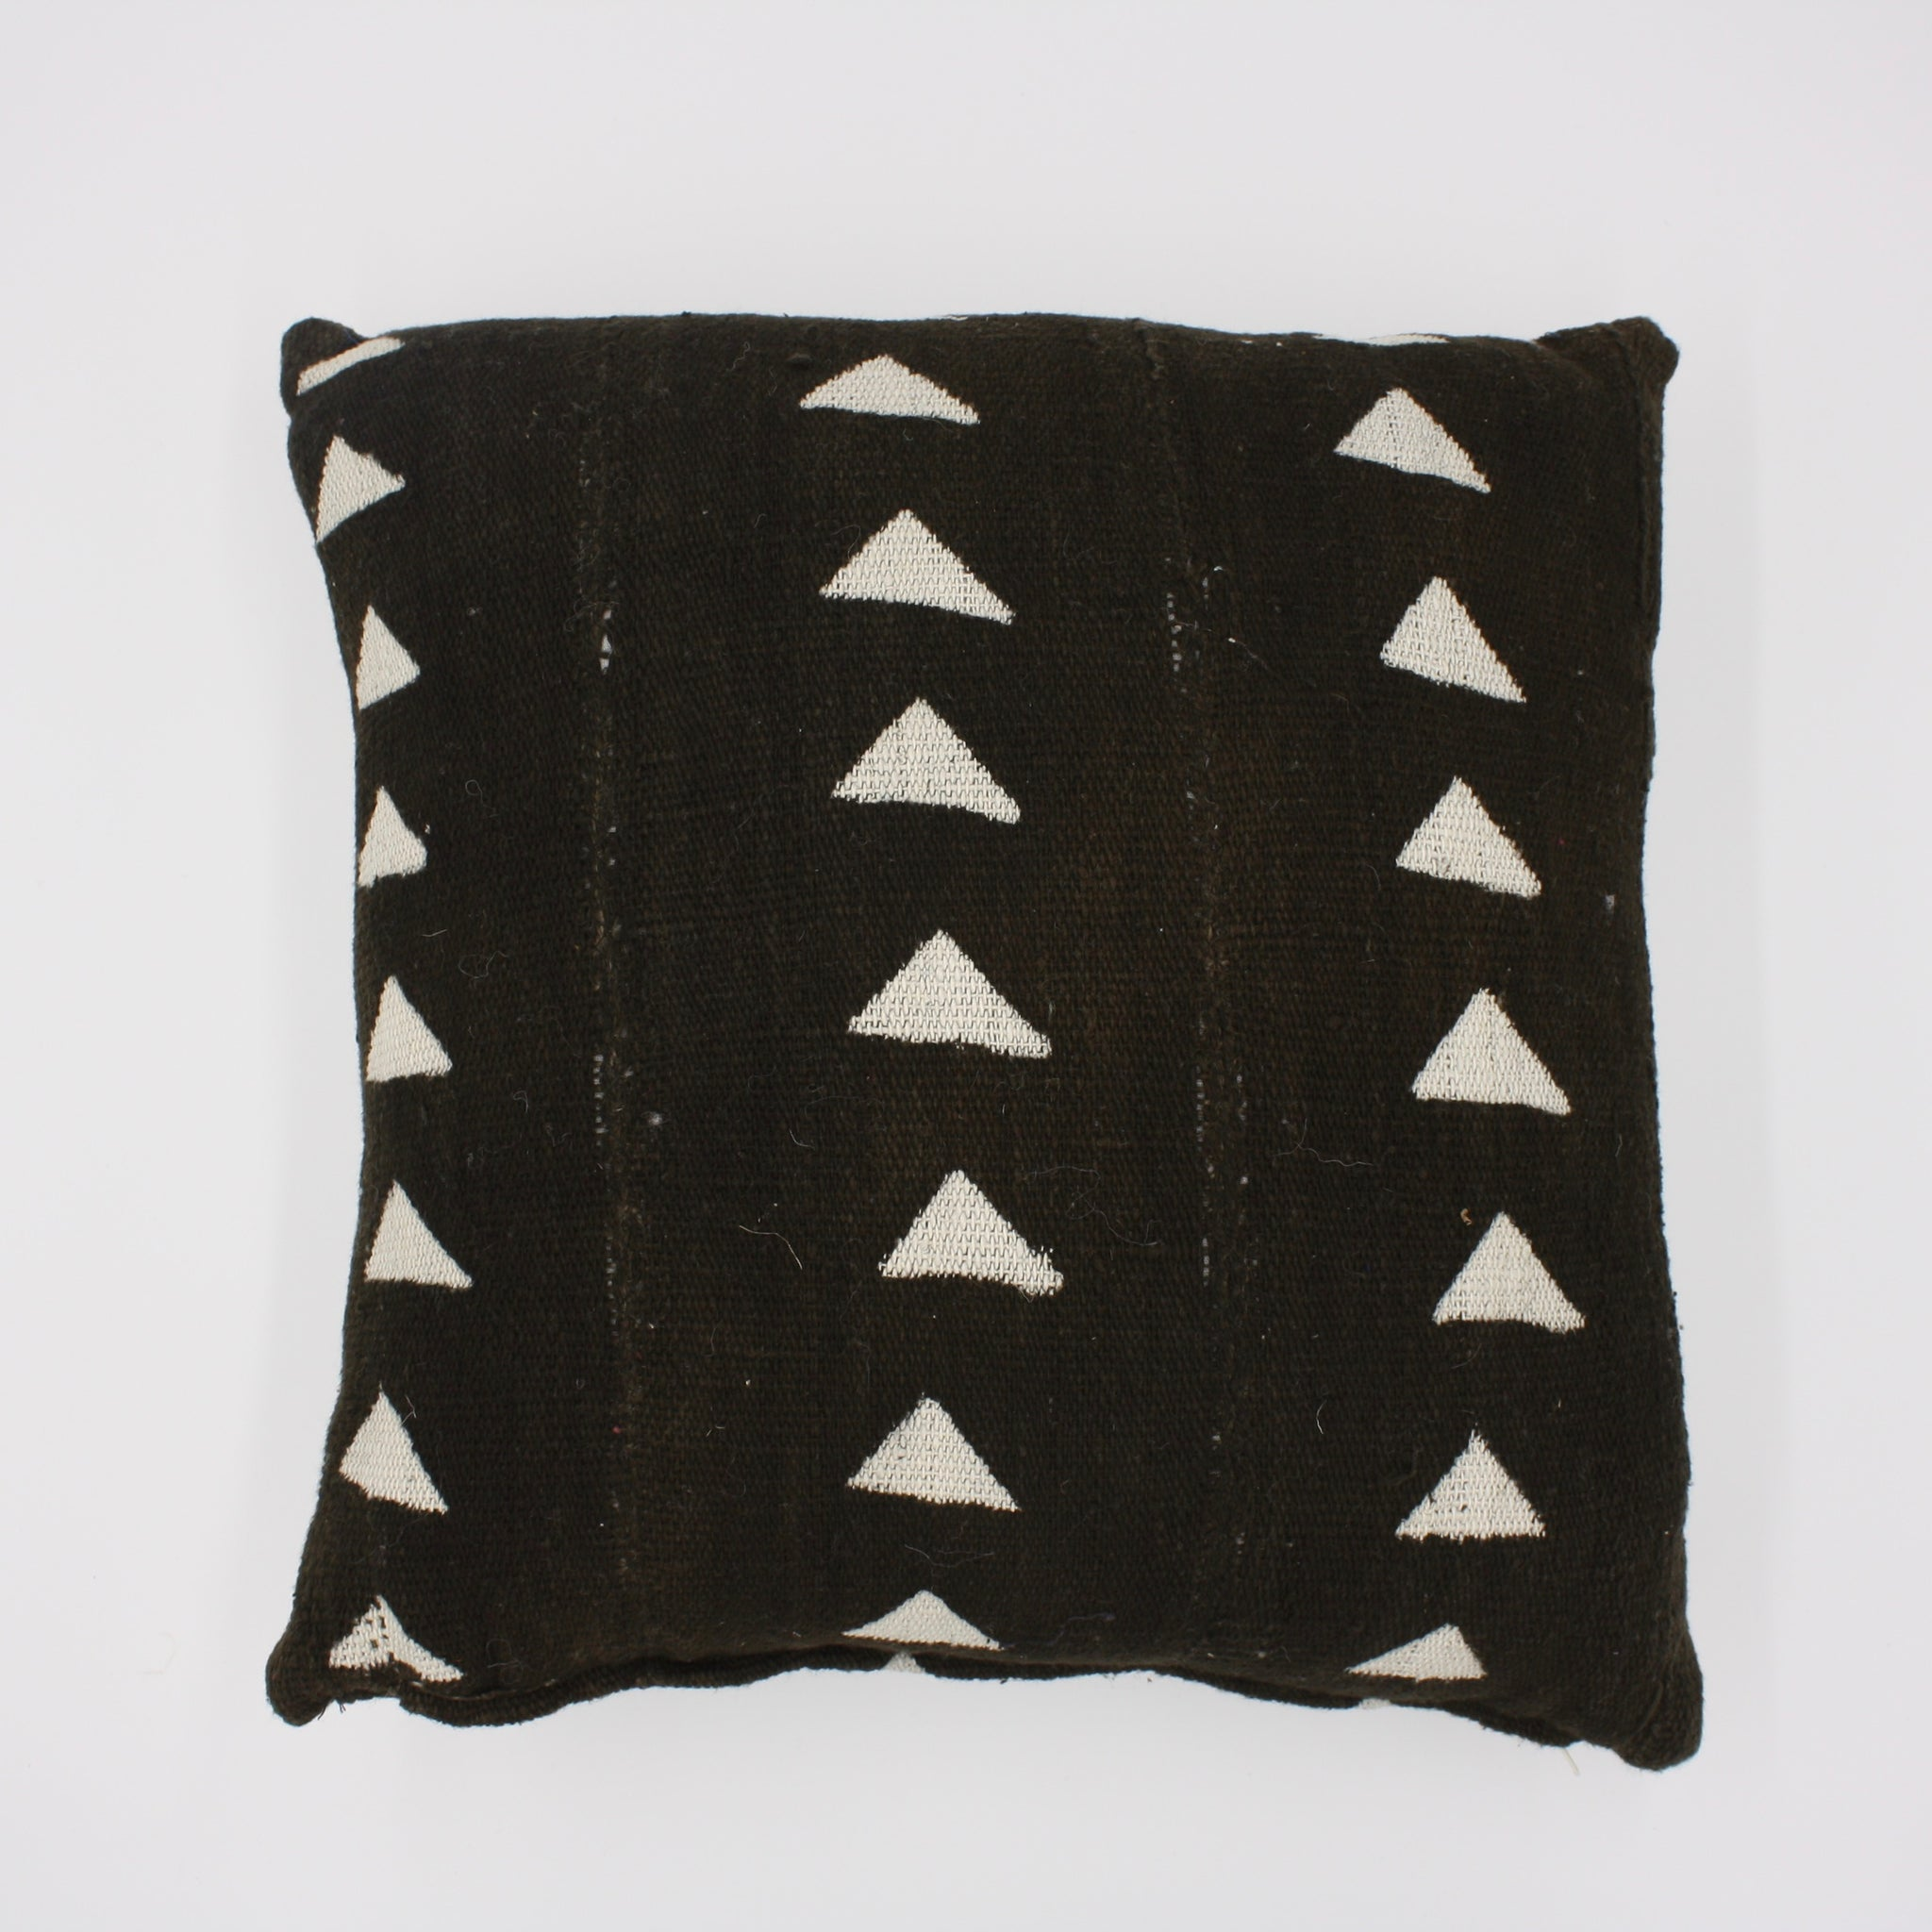 Mali Mud Cloth Pillow - Black